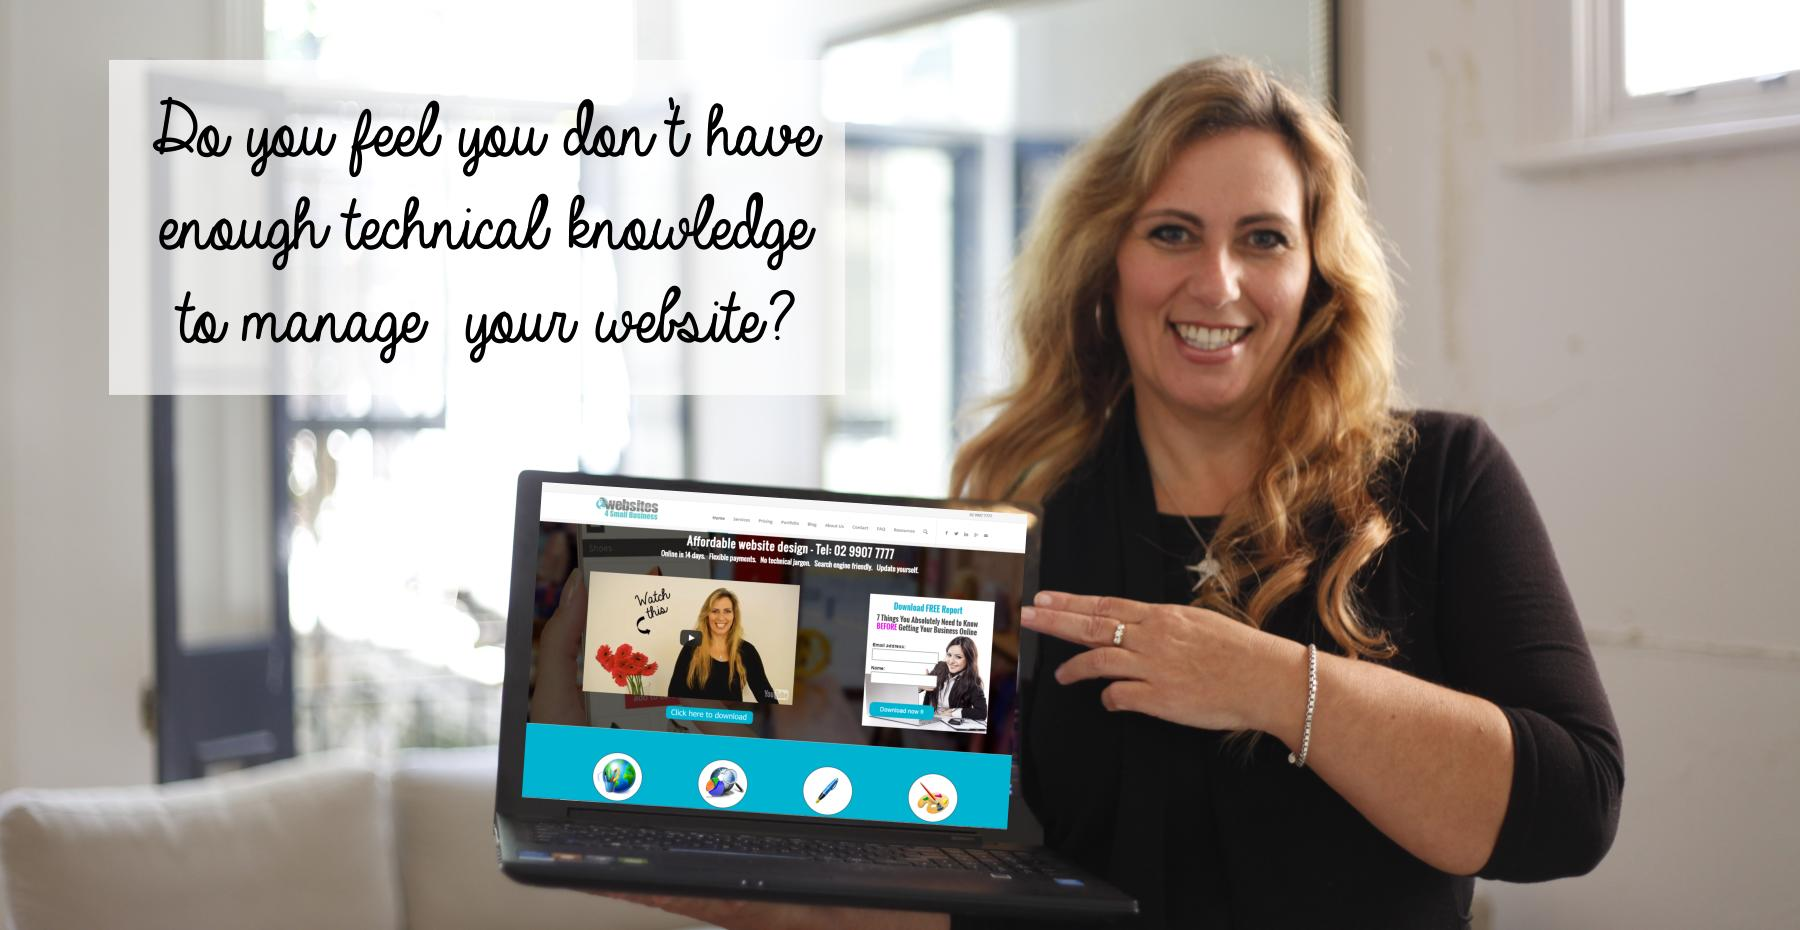 Ivana Katz - Do you feel you don't have enough technical knowledge to manage your website?